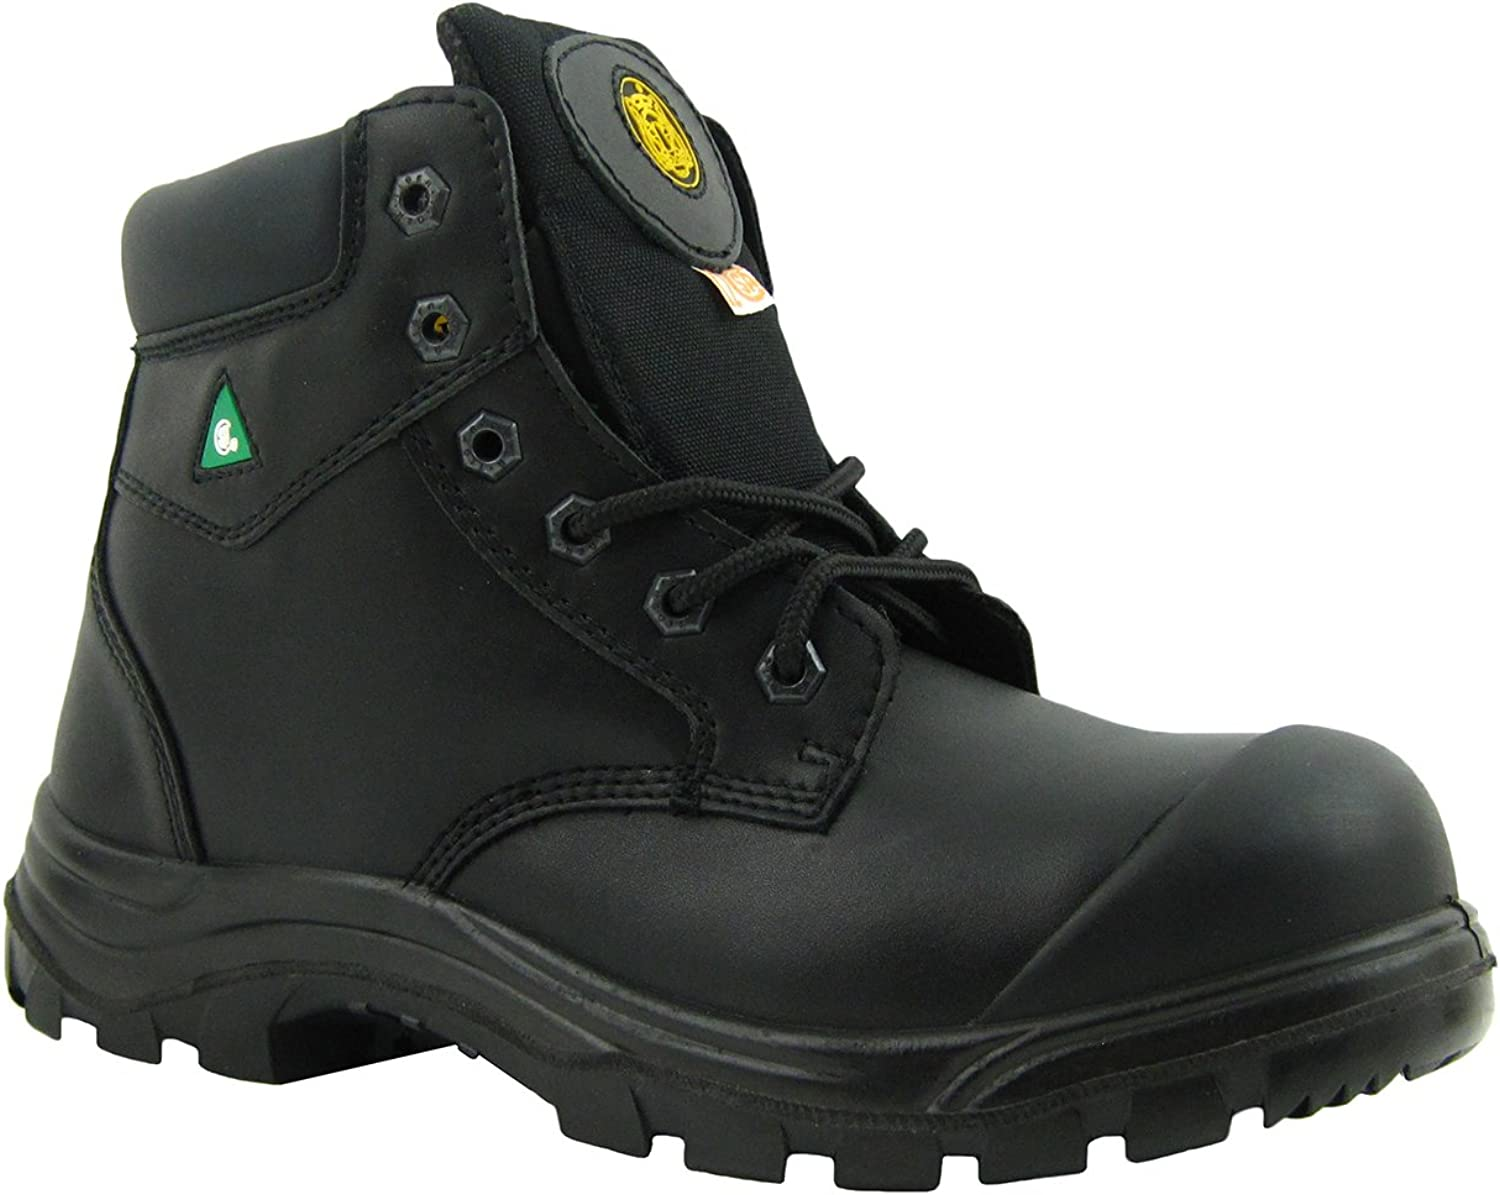 Tiger Safety CSA Men's 6 Inch Lightweight Leather Work Safety Boots - 3055